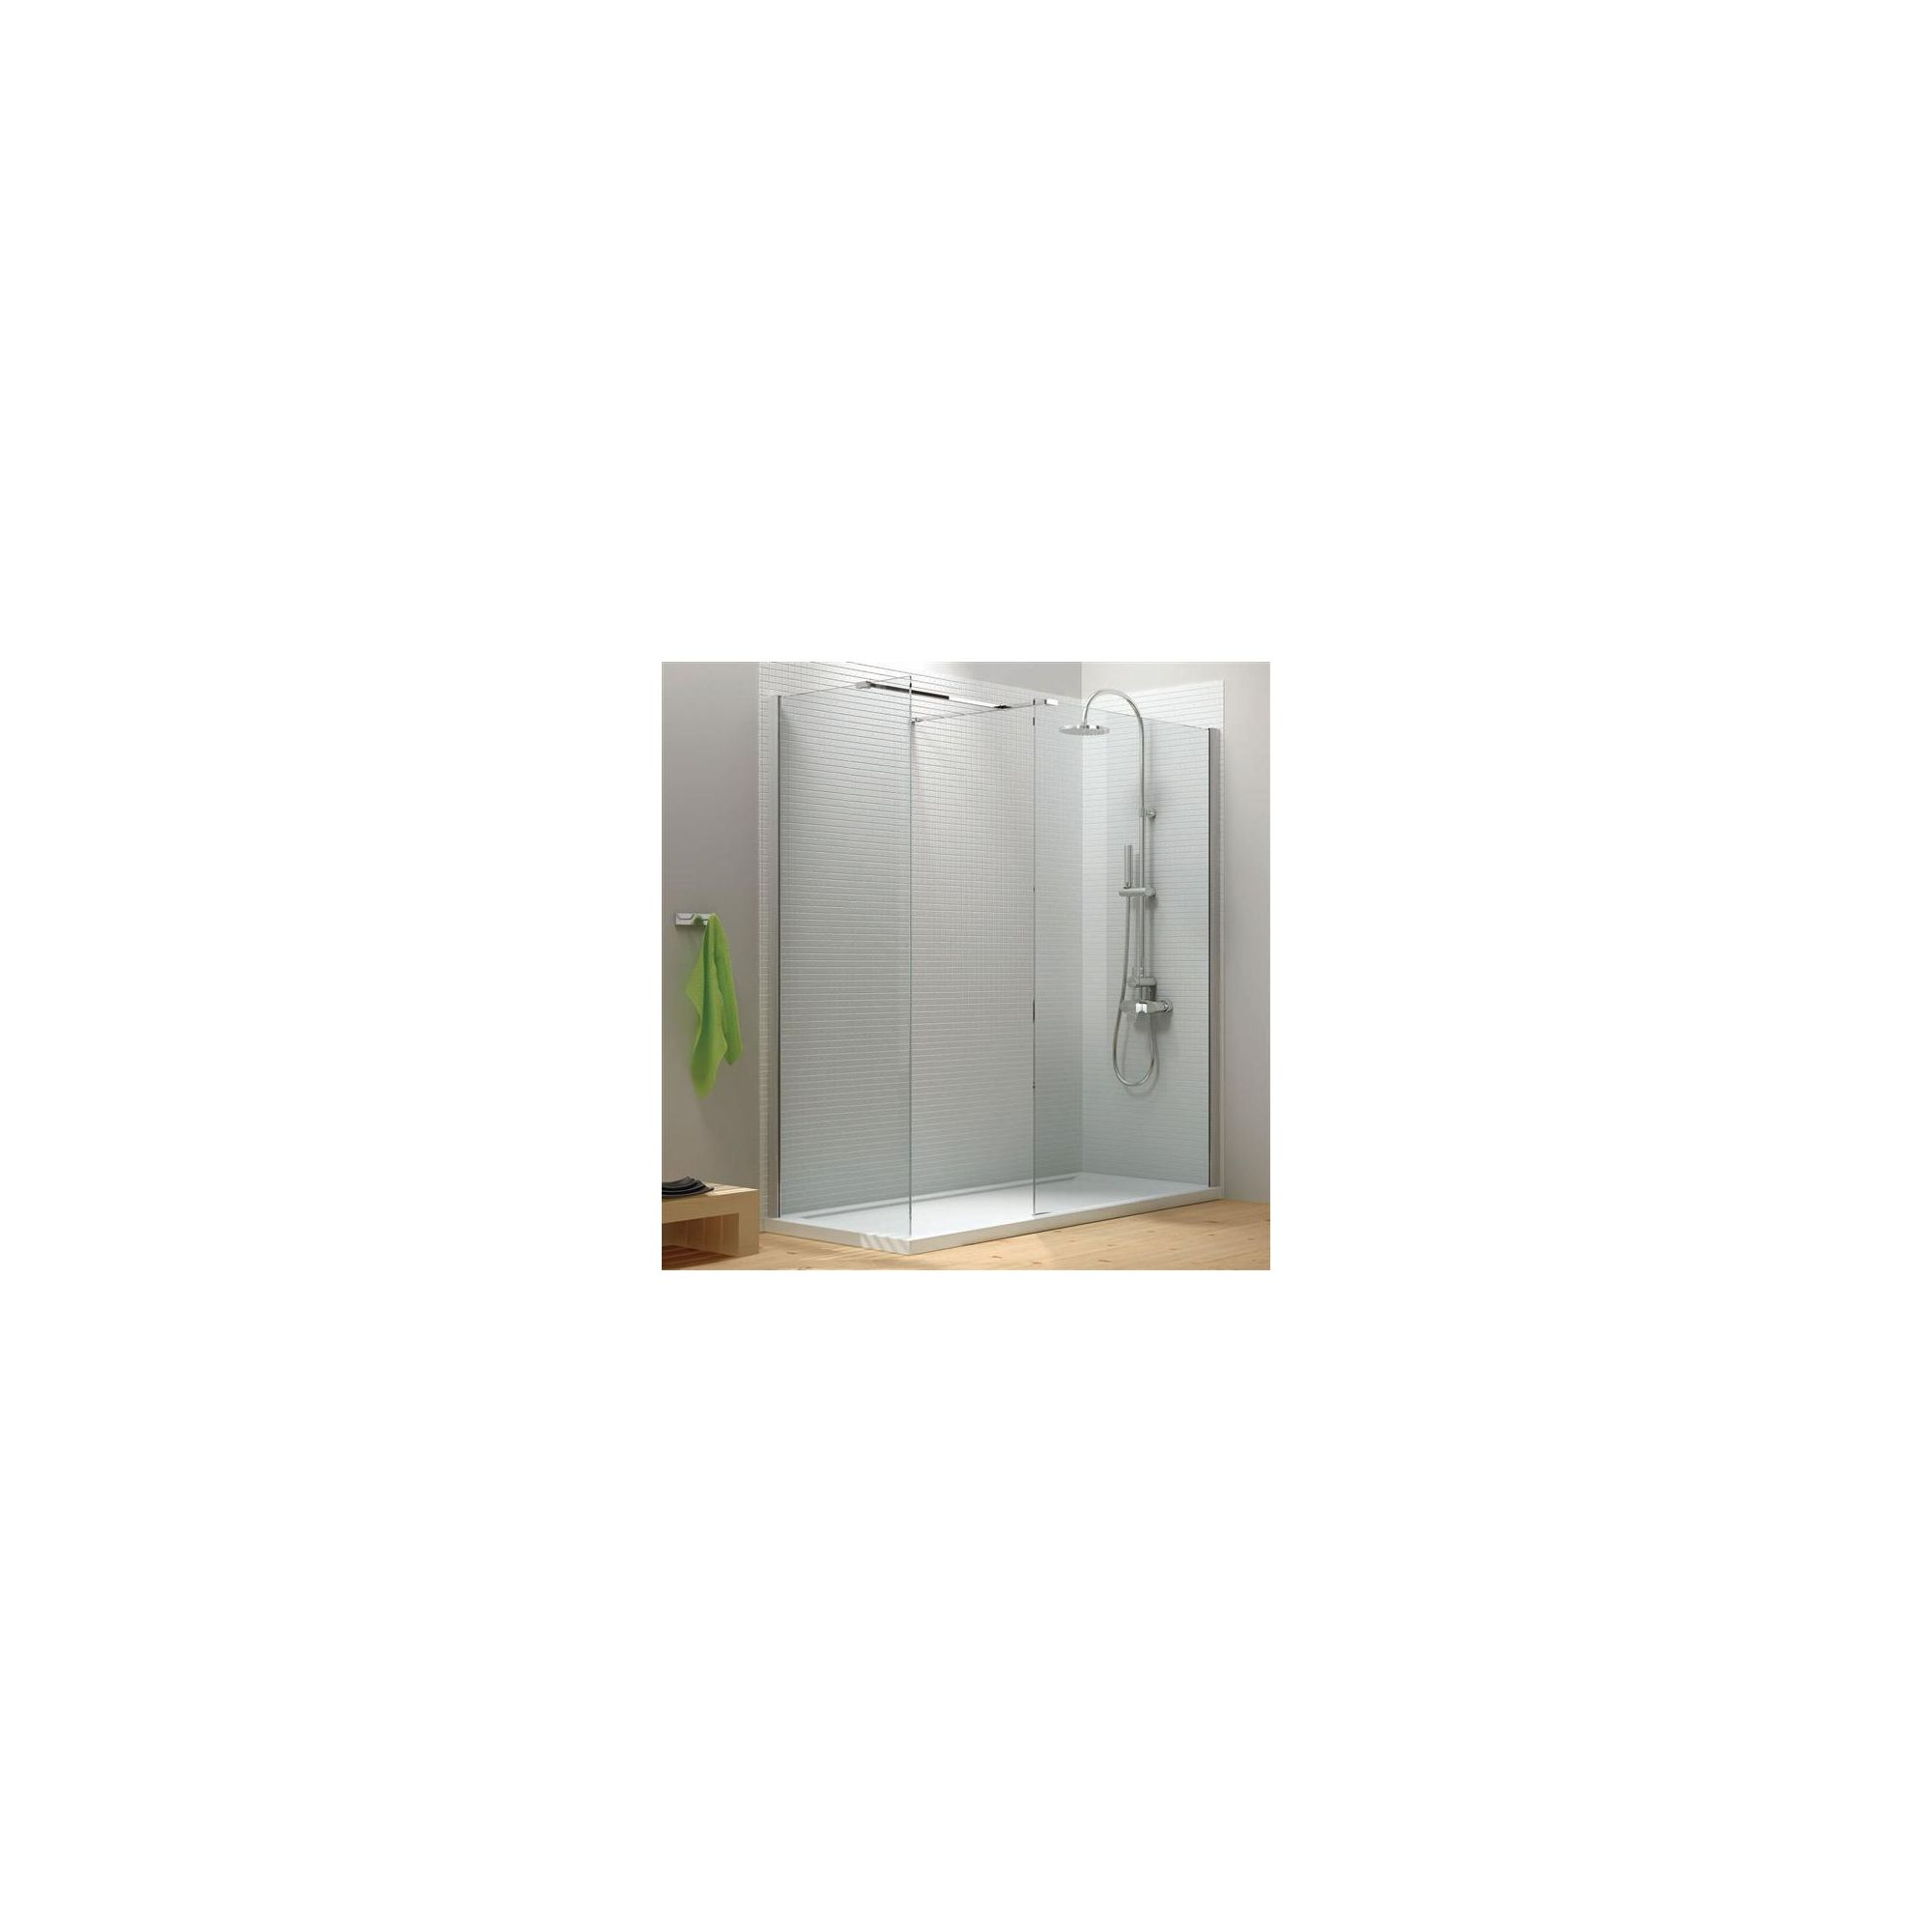 Merlyn Vivid Eight Walk-In Shower Enclosure, 1500mm x 800mm, Low Profile Tray, 8mm Glass at Tesco Direct